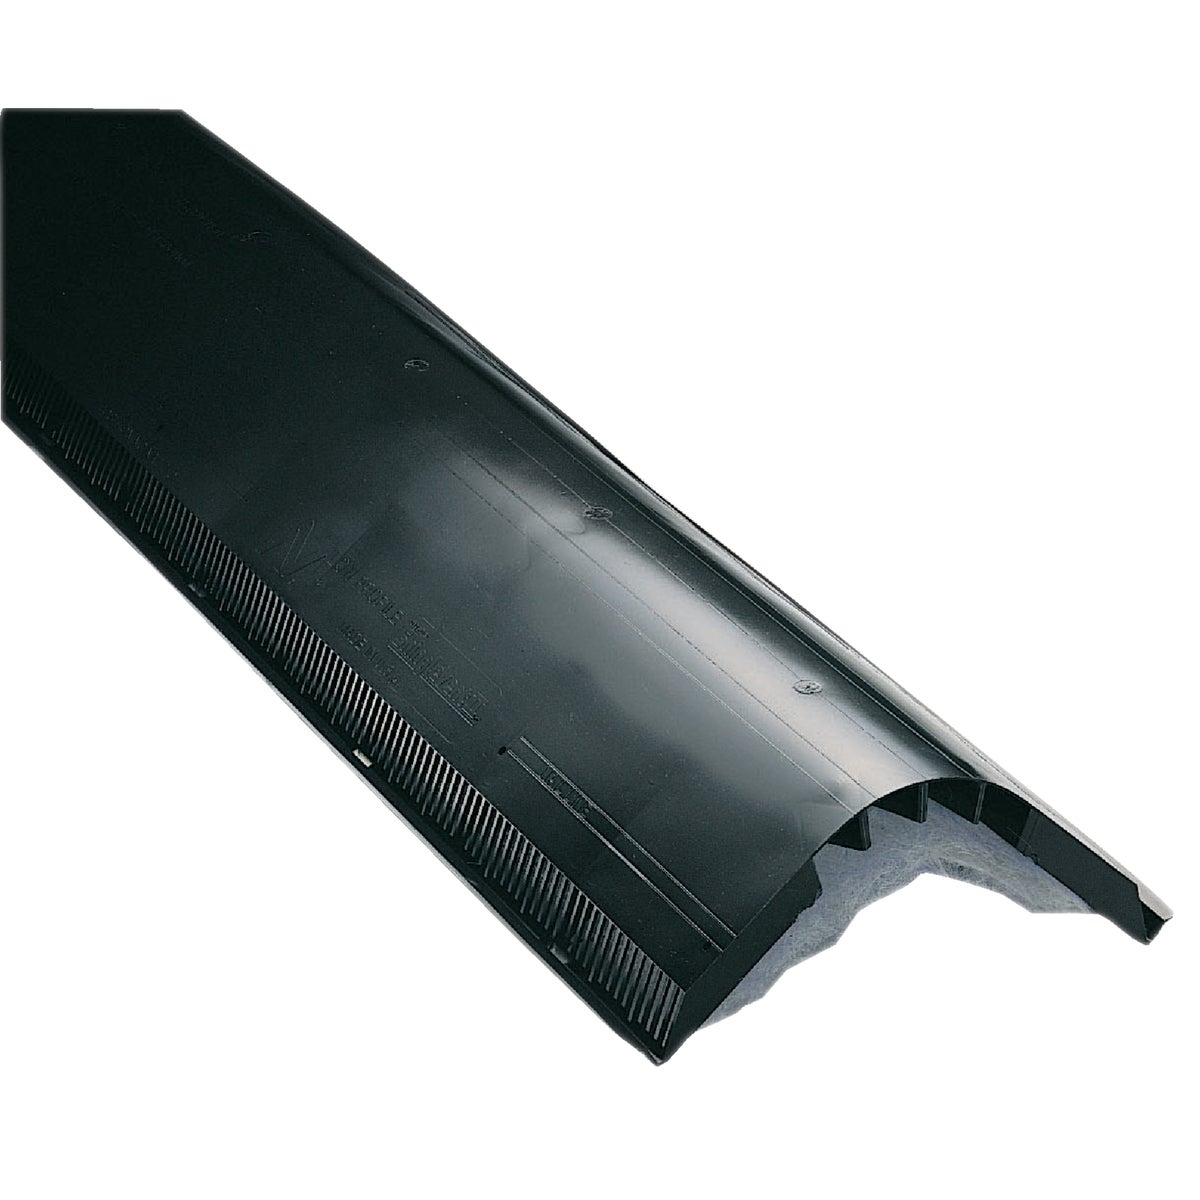 4'FLT SHG/OVR RIDGE VENT - 84710 by Air Vent Inc